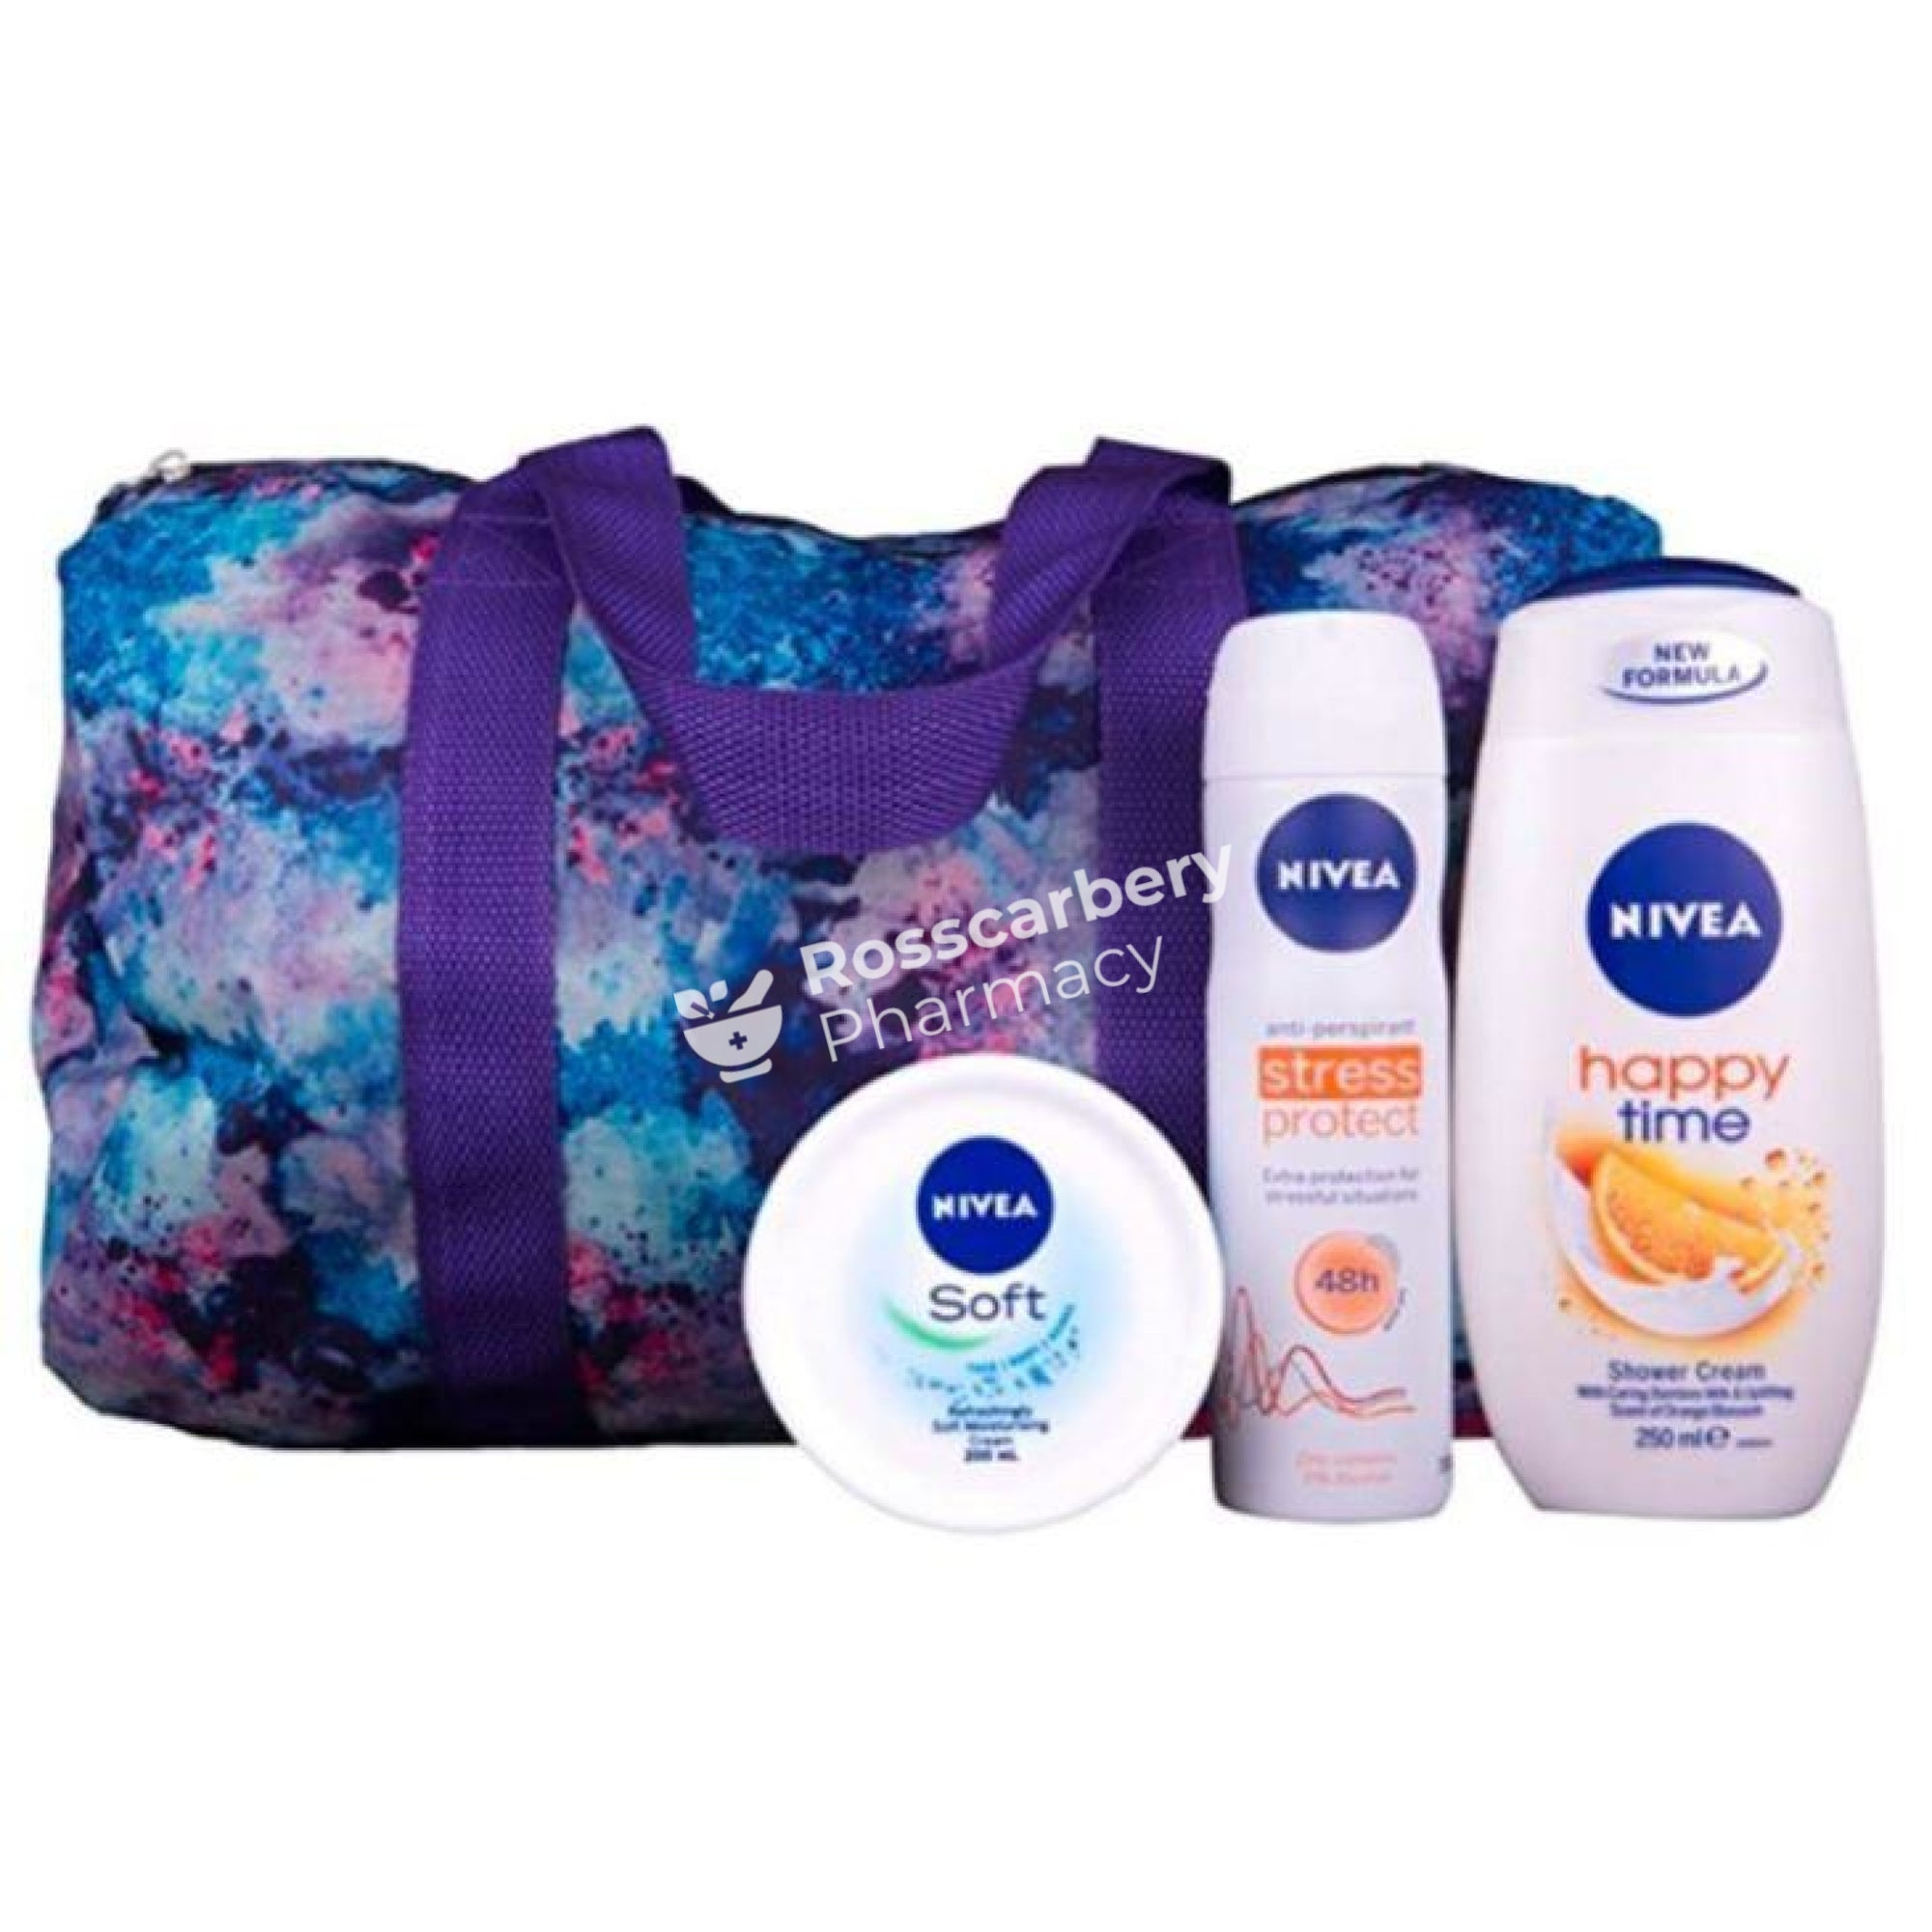 Nivea Revitalising Moments Gift Set With Shoulder Bag 3Pc Skin & Bath